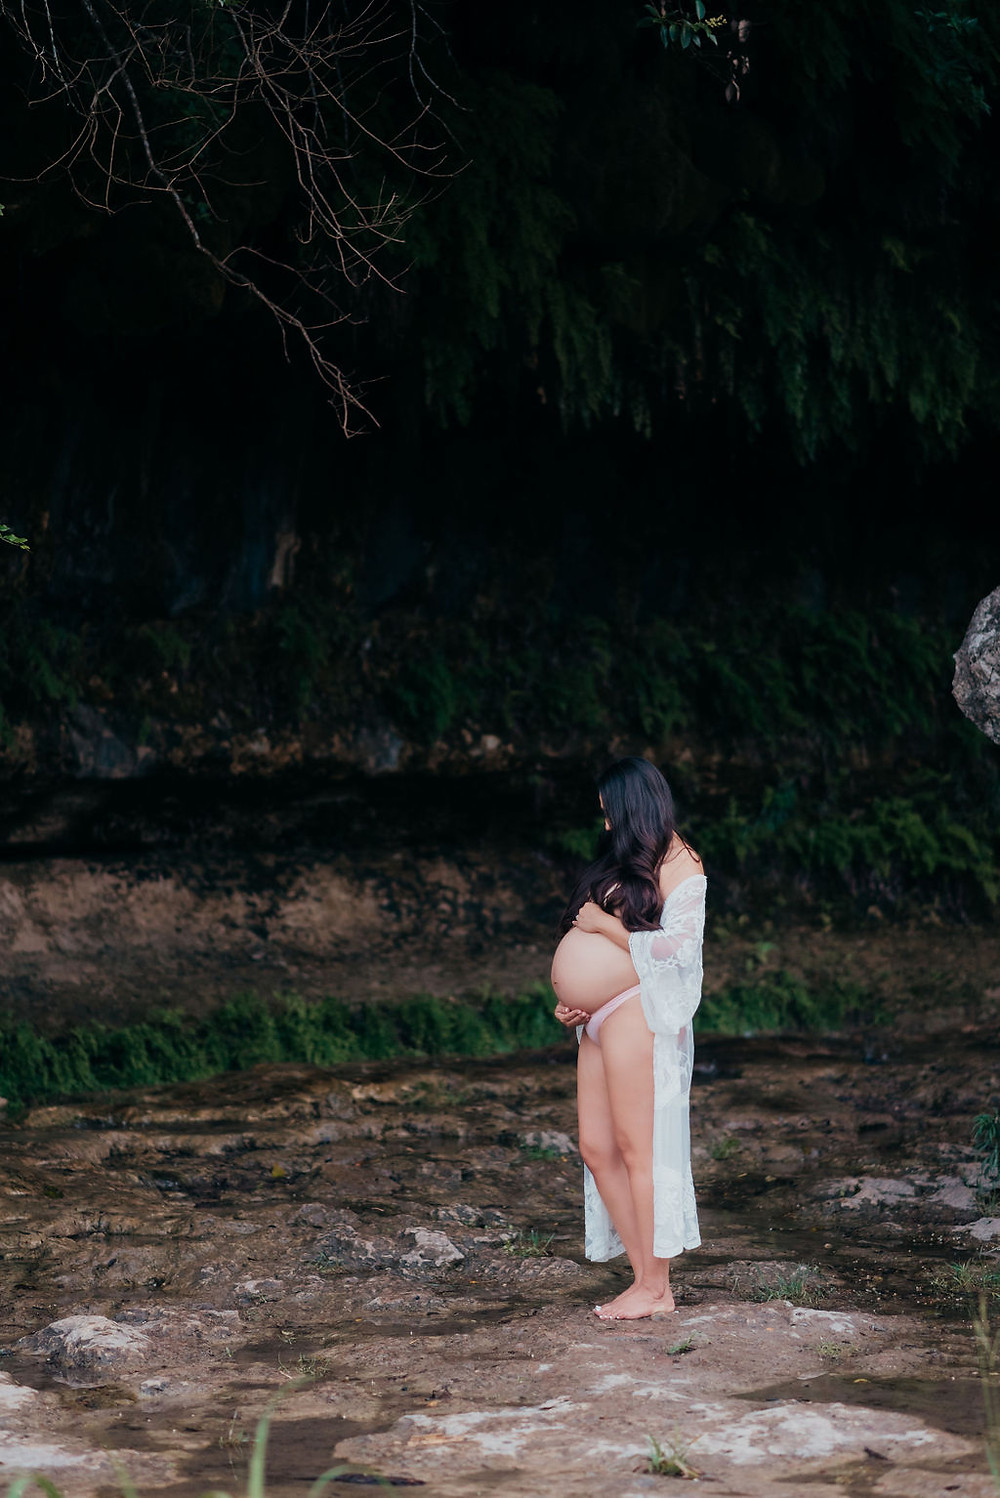 pregnant woman looks down at her baby belly. her hair shrouds her face to give an element of mystery. she is wearing a white lacy coverup that is open in front to show off her bare pregnant belly